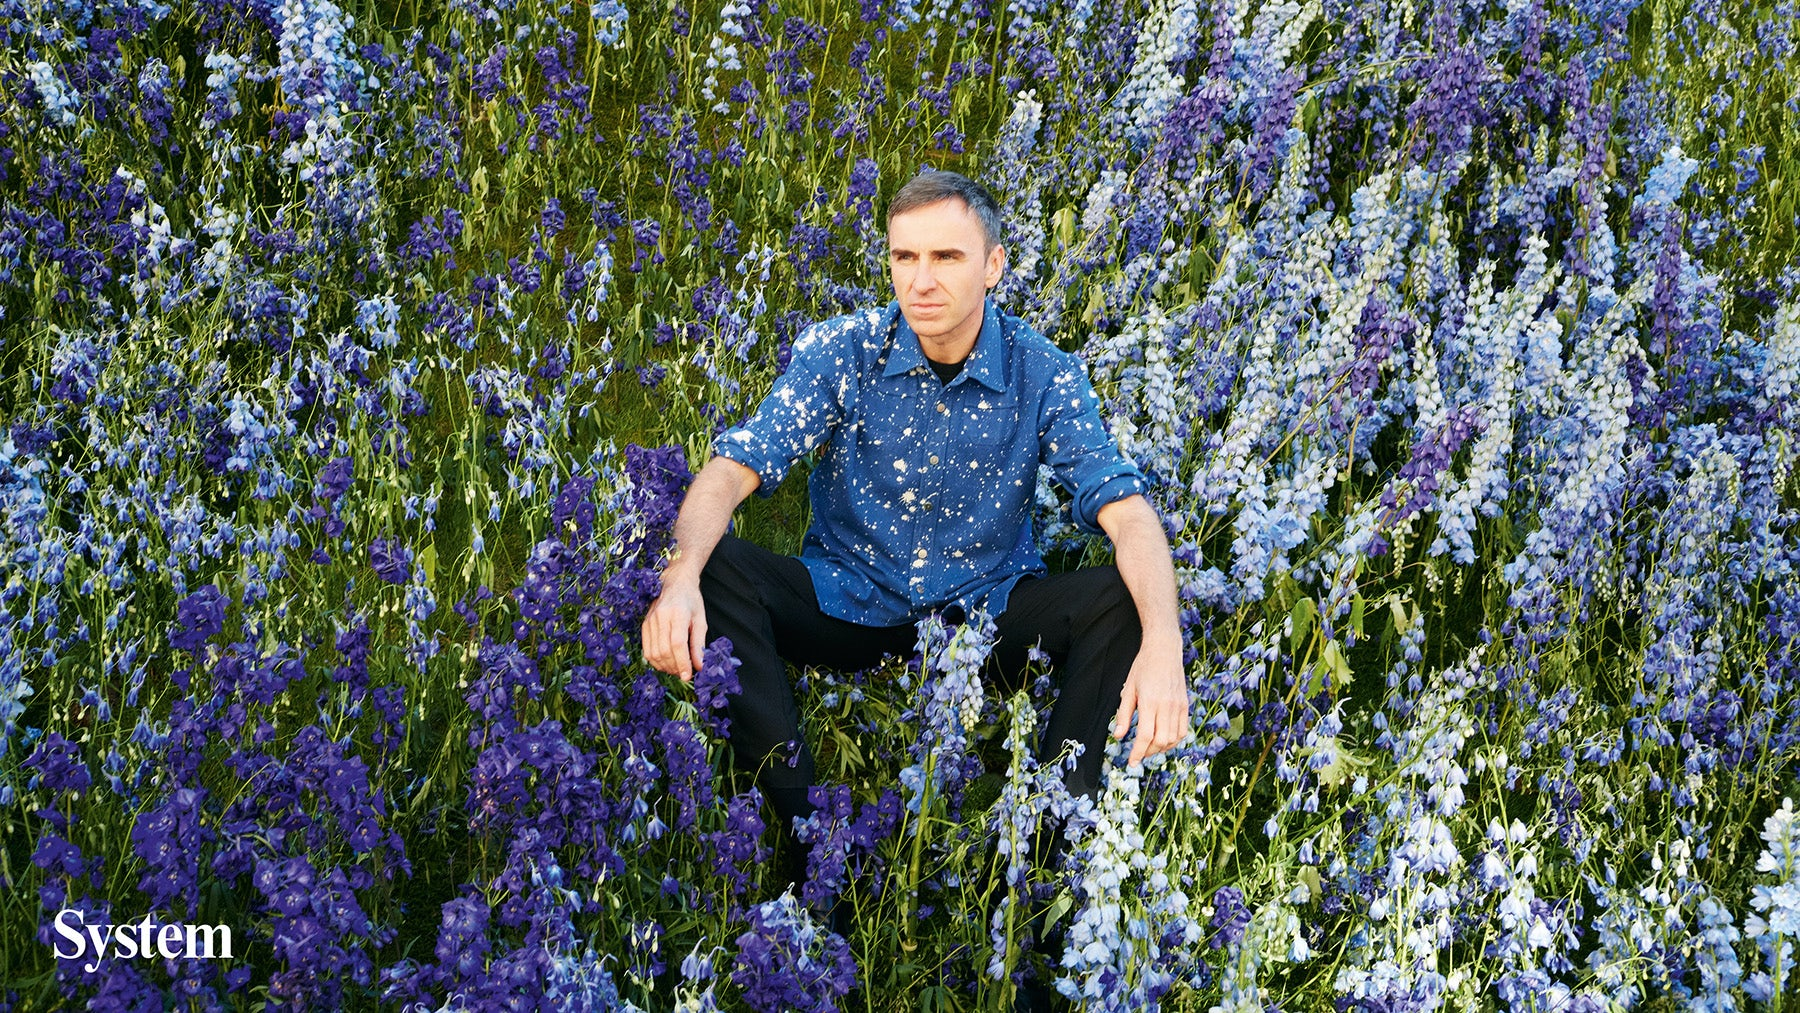 Raf Simons | Photo: Juergen Teller for System